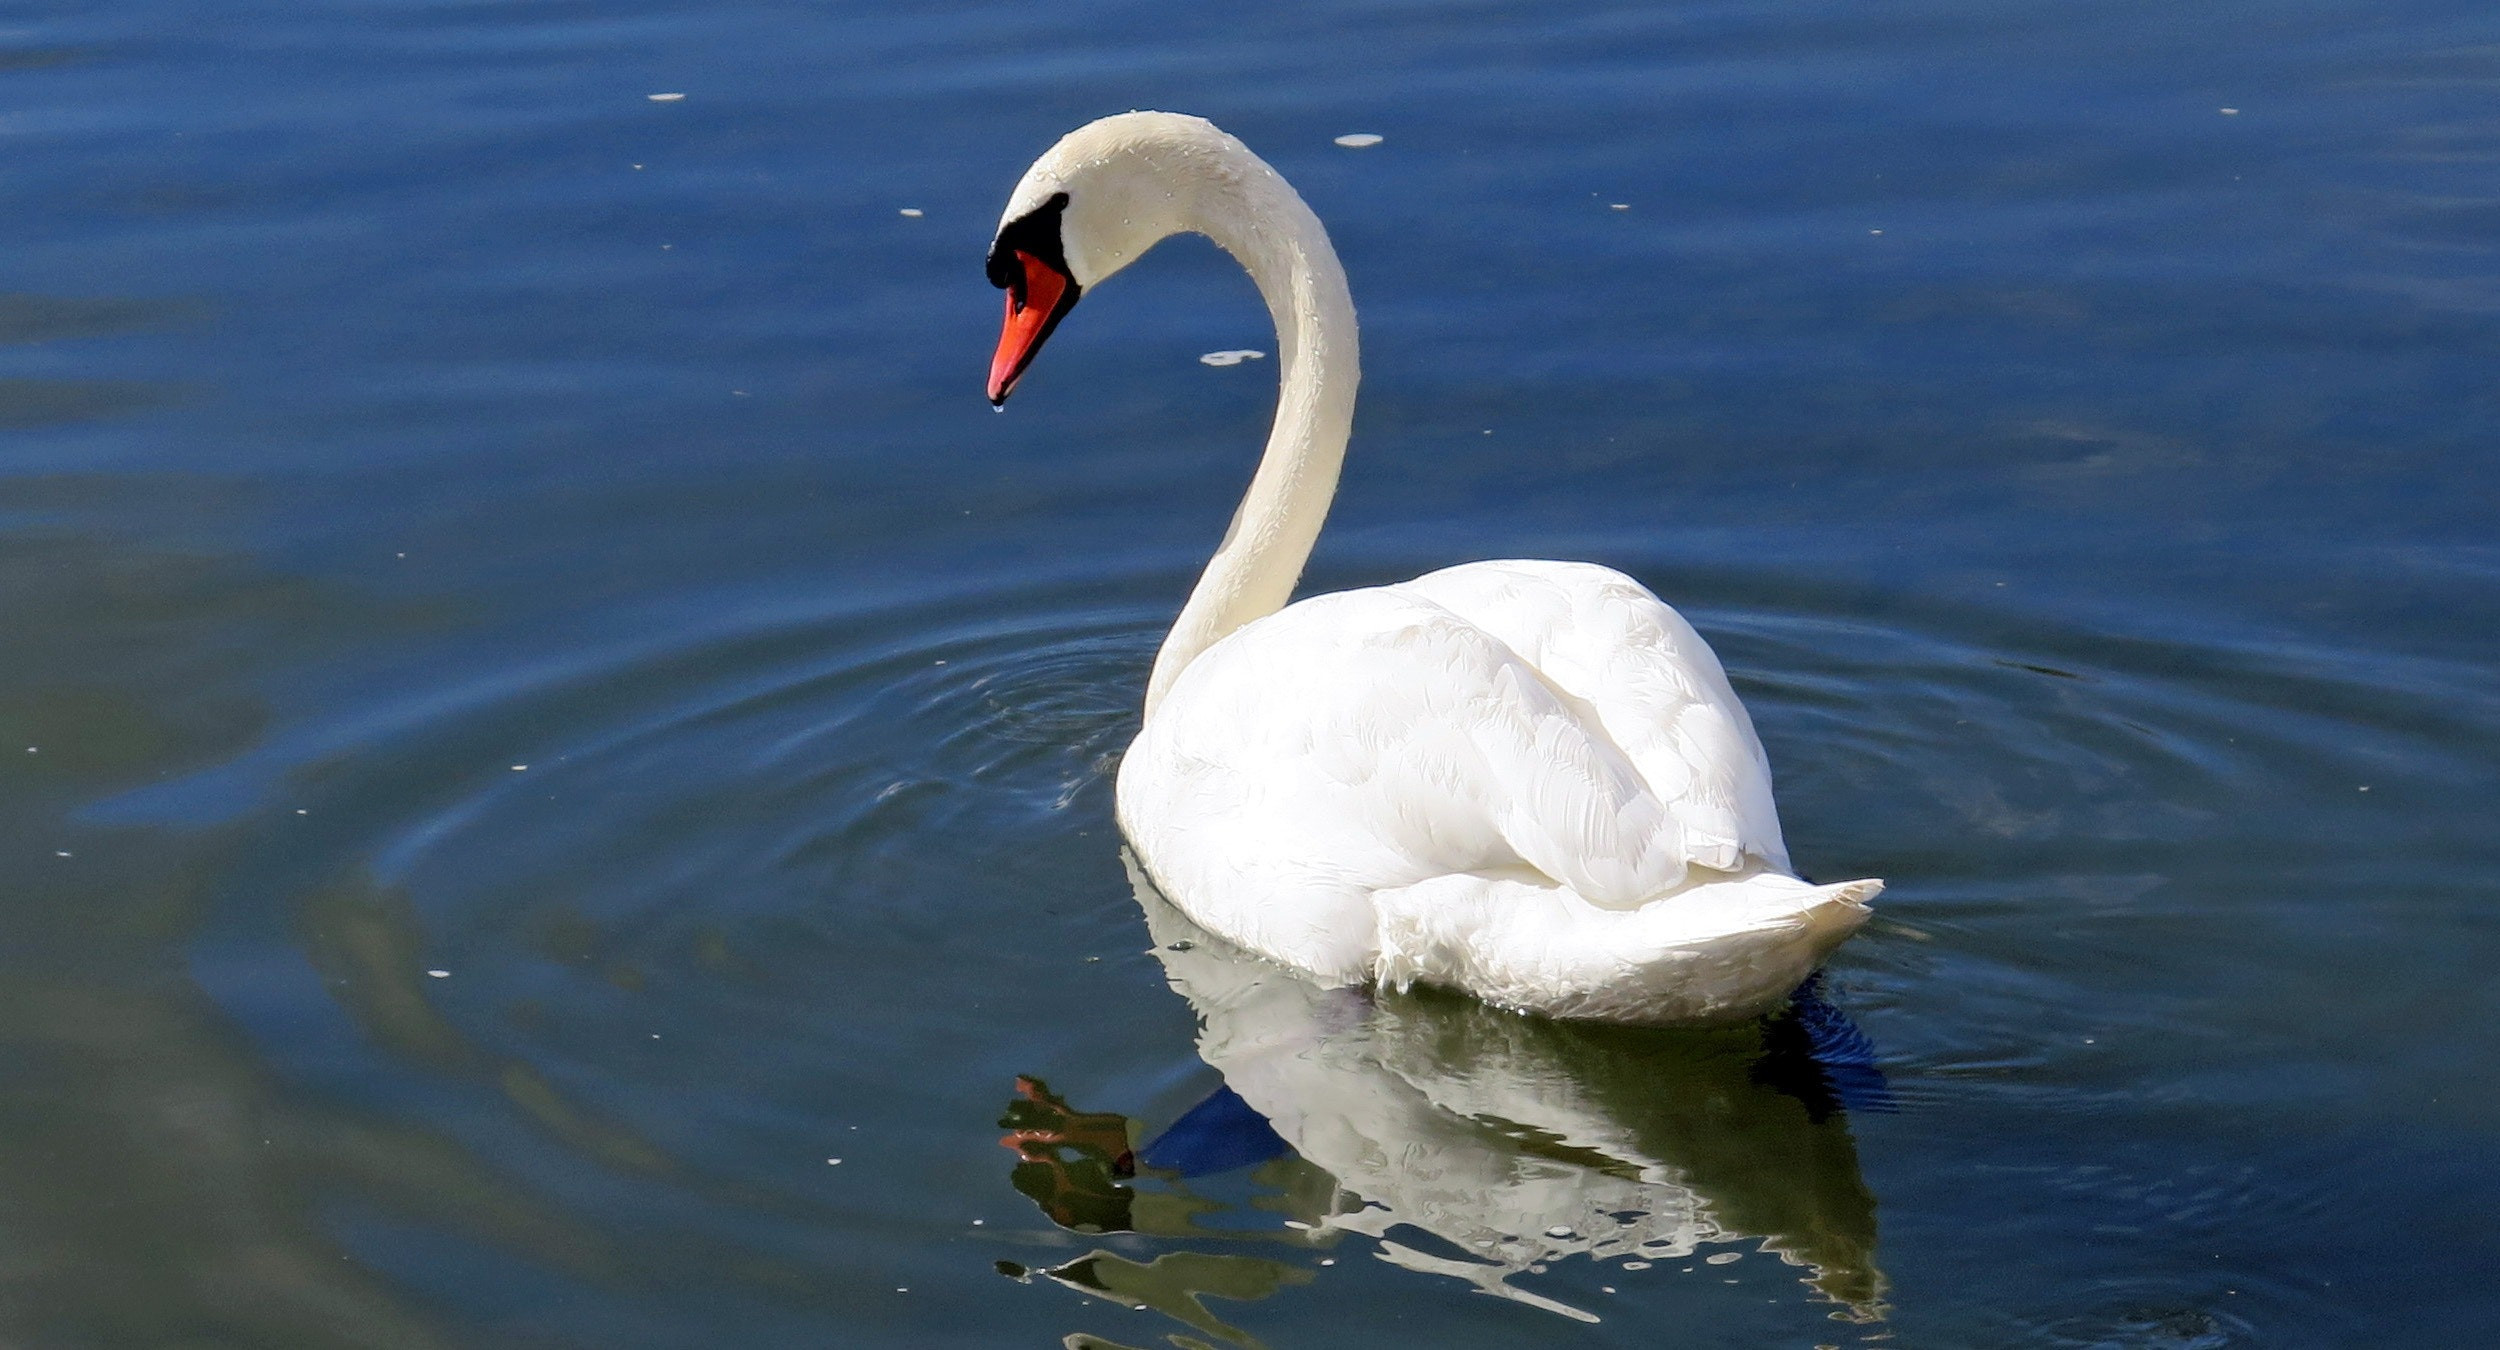 Ref image for the swan